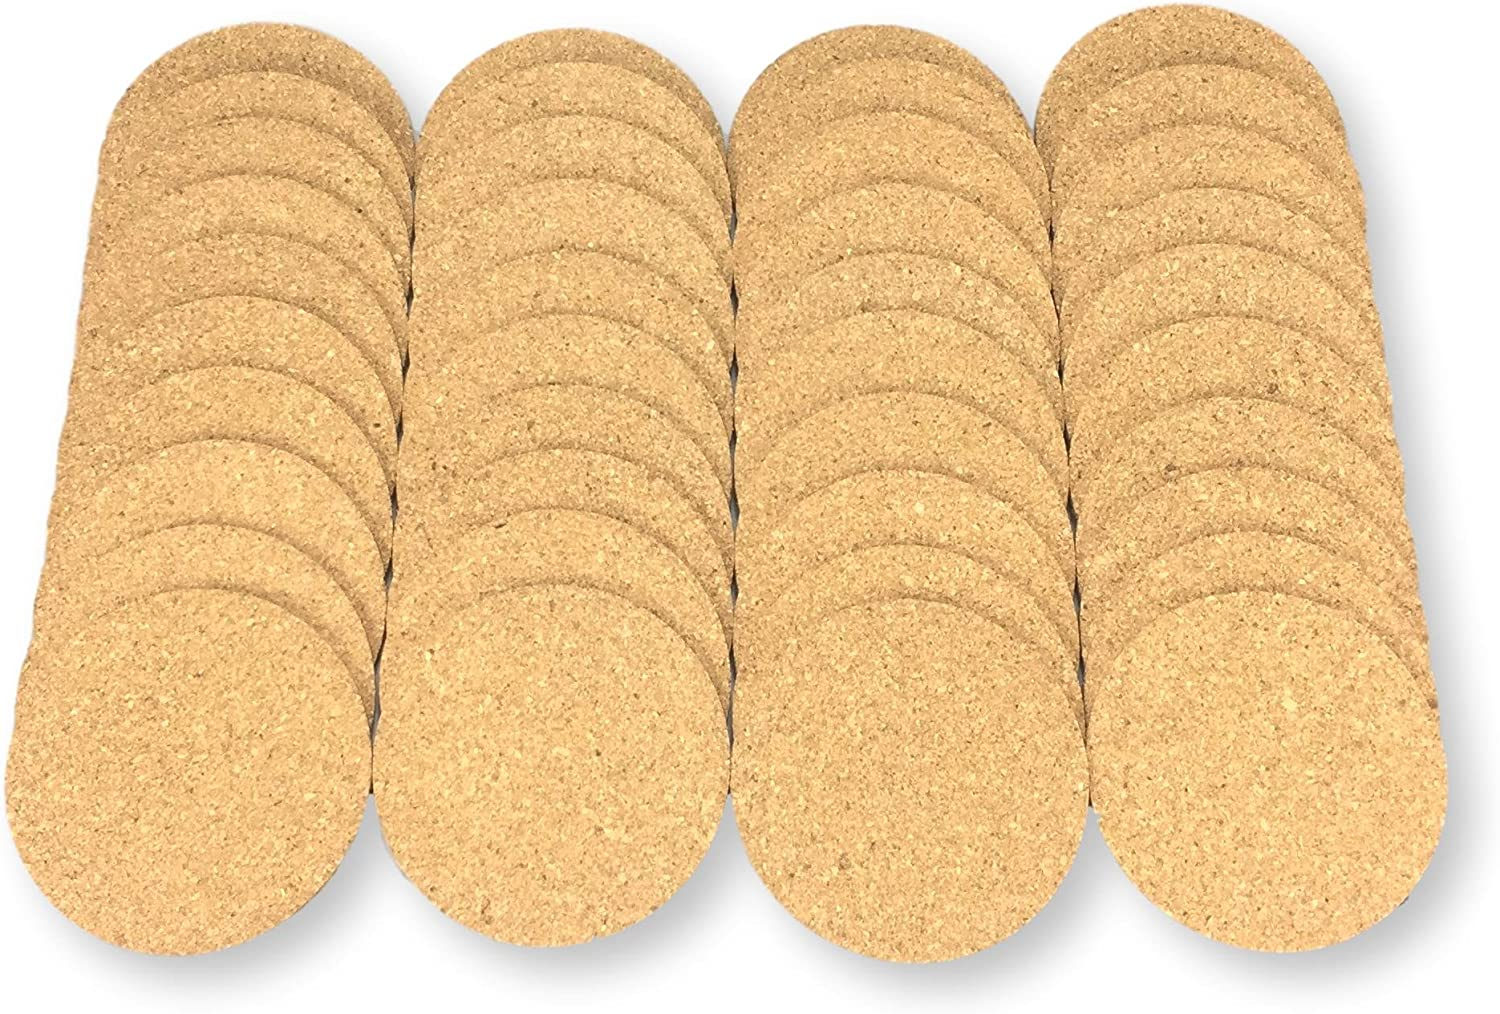 Keklle Round Cork Coasters - Set of 40 For business,Best Drink Coaster for Drinks in Office, Home, or Cottage